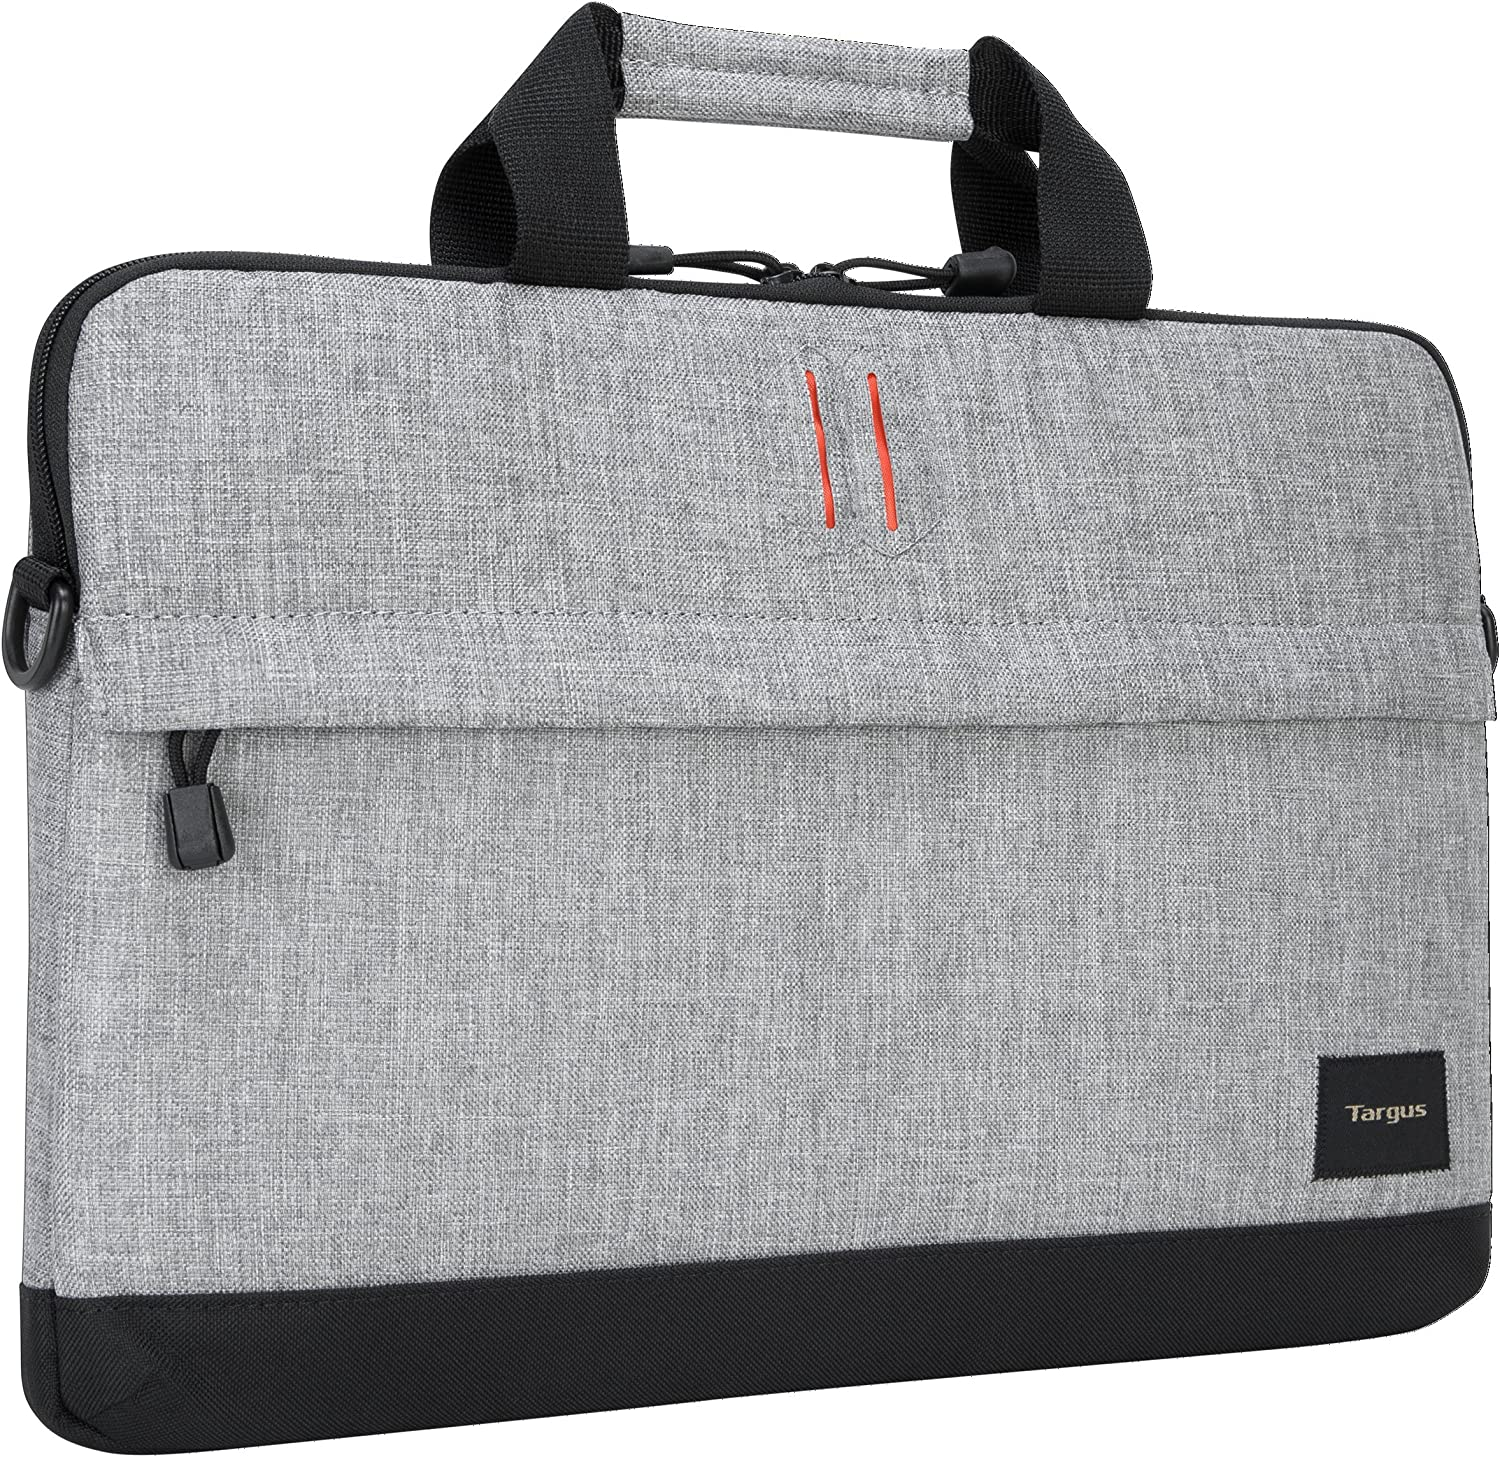 Targus Strata Slipcase Laptop Case with Lightweight Durable Padding, Front Zip Pocket Pouch, Shoulder Strap, Protective Sleeve fits 15.6-Inch Laptop, Gray/Pewter (TSS63204US)